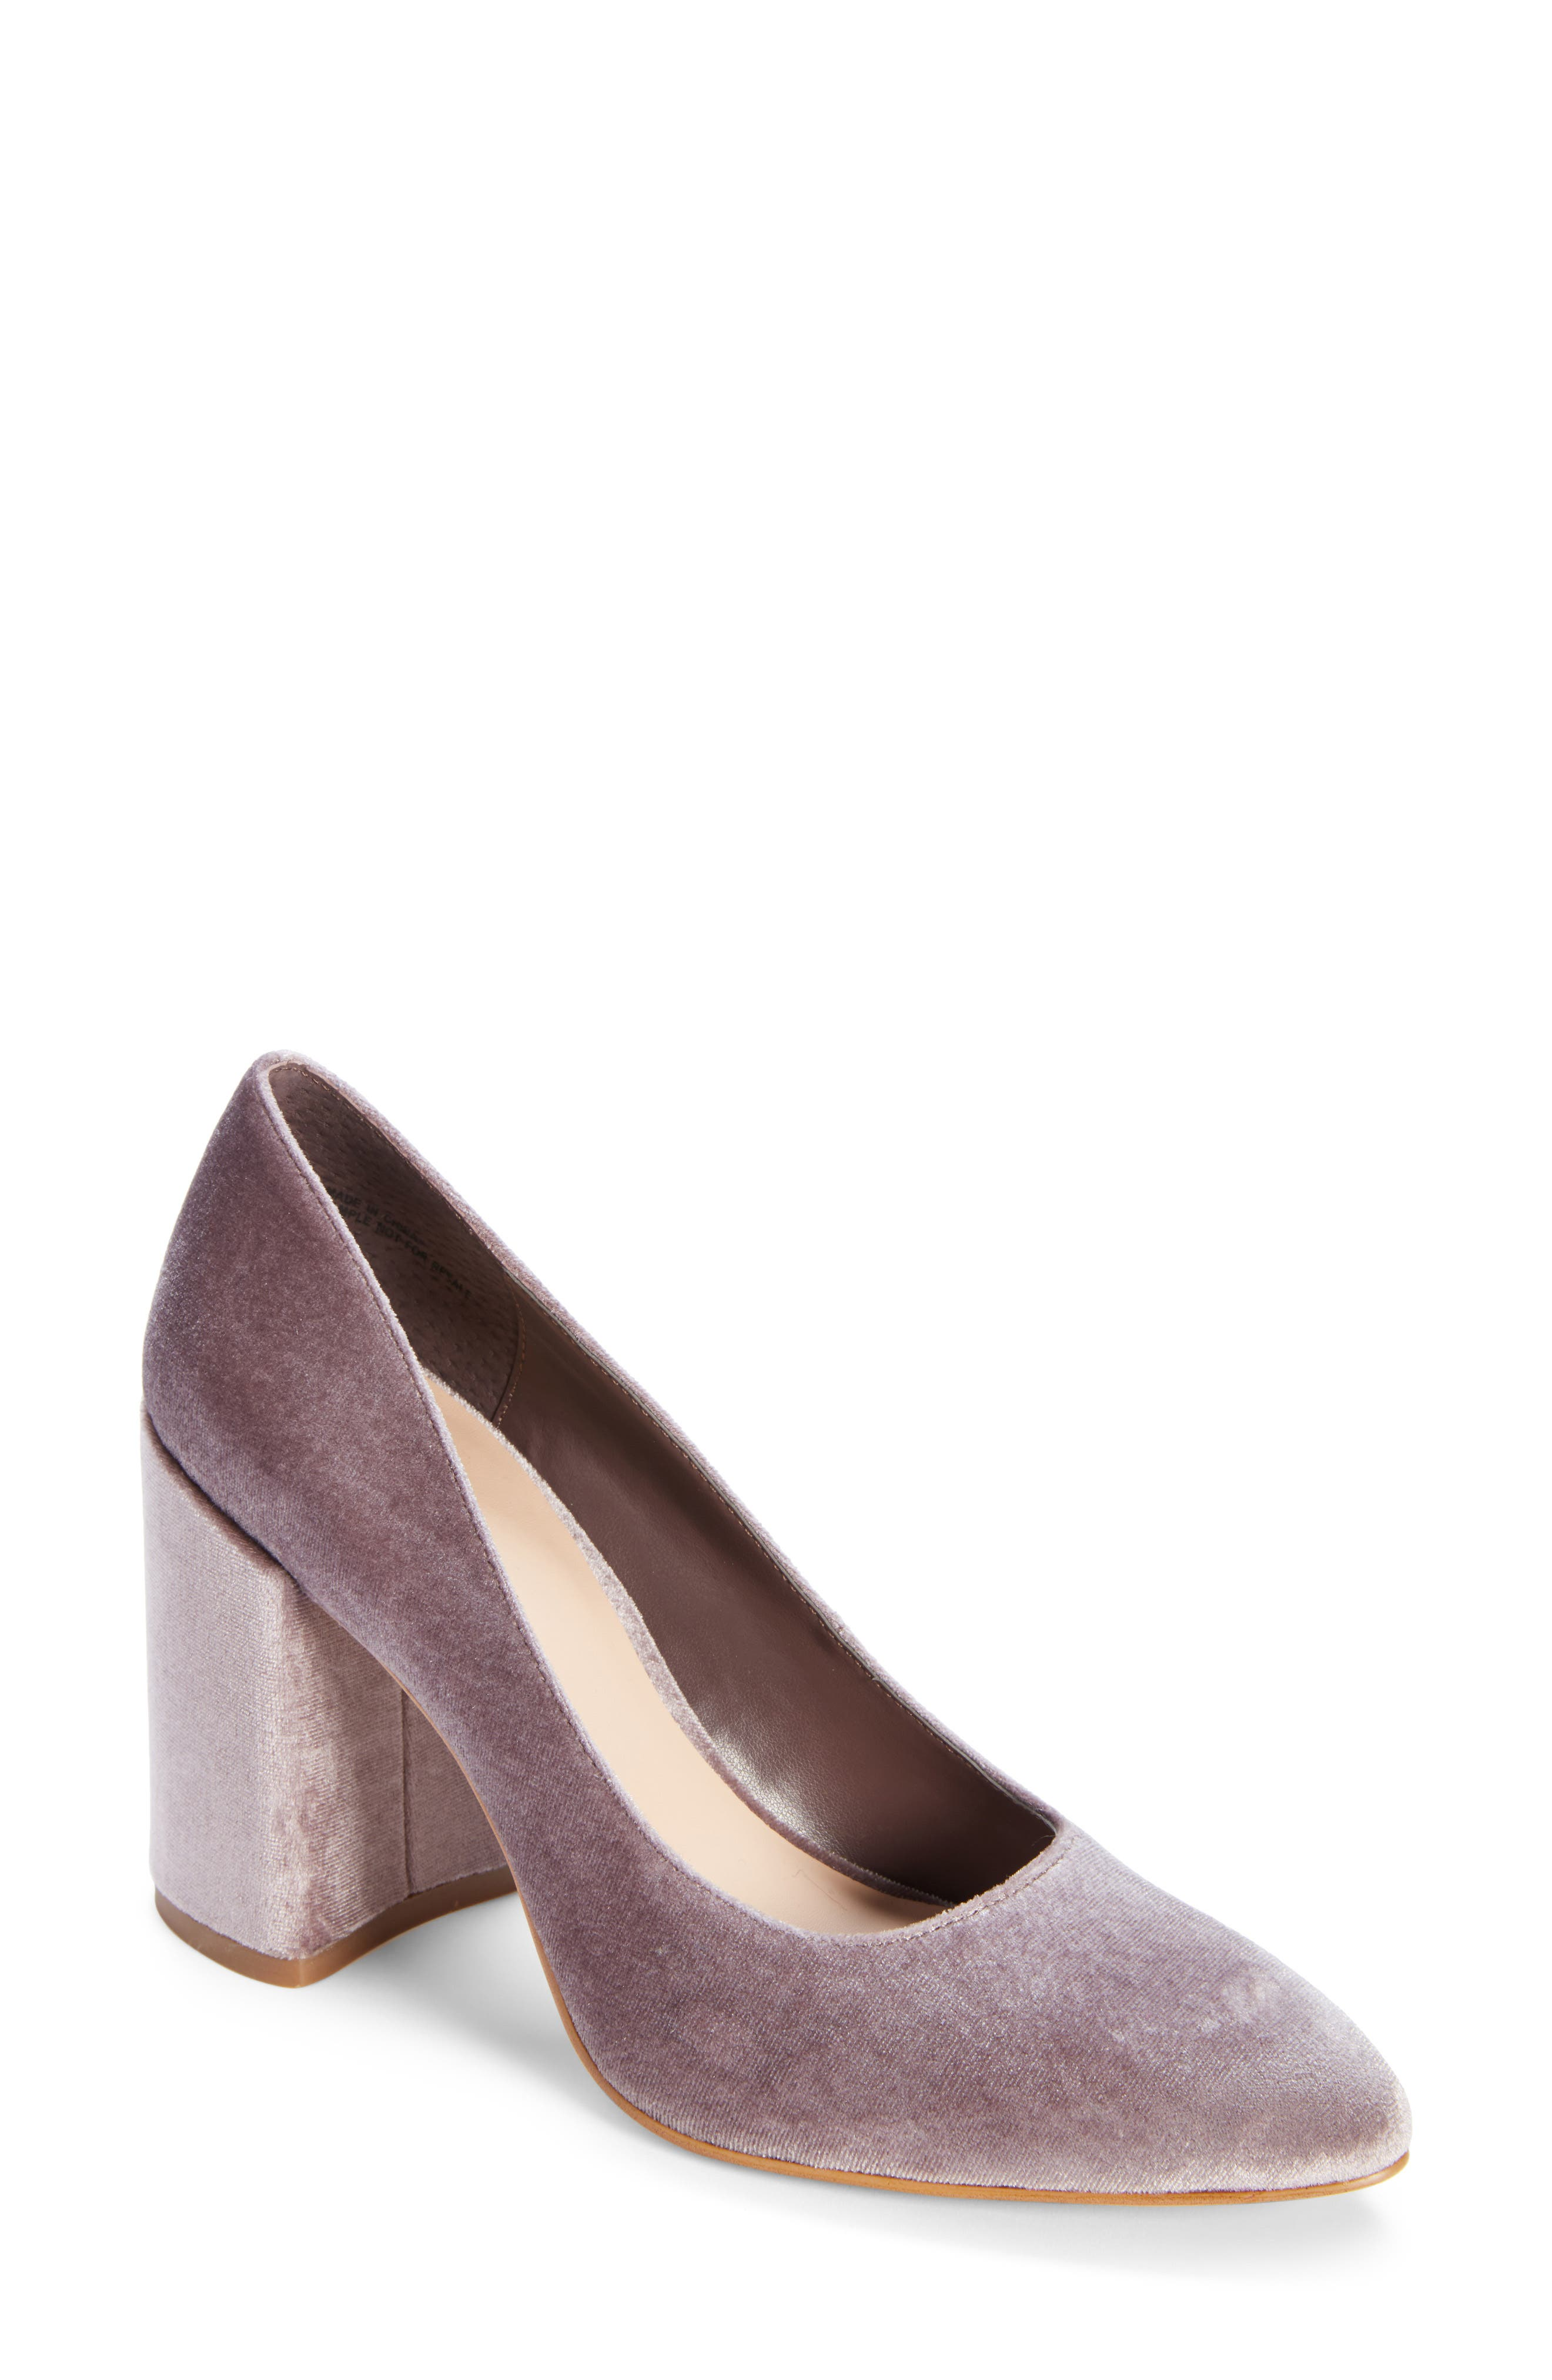 LEITH,                             Nik Block Heel Pump,                             Main thumbnail 1, color,                             257